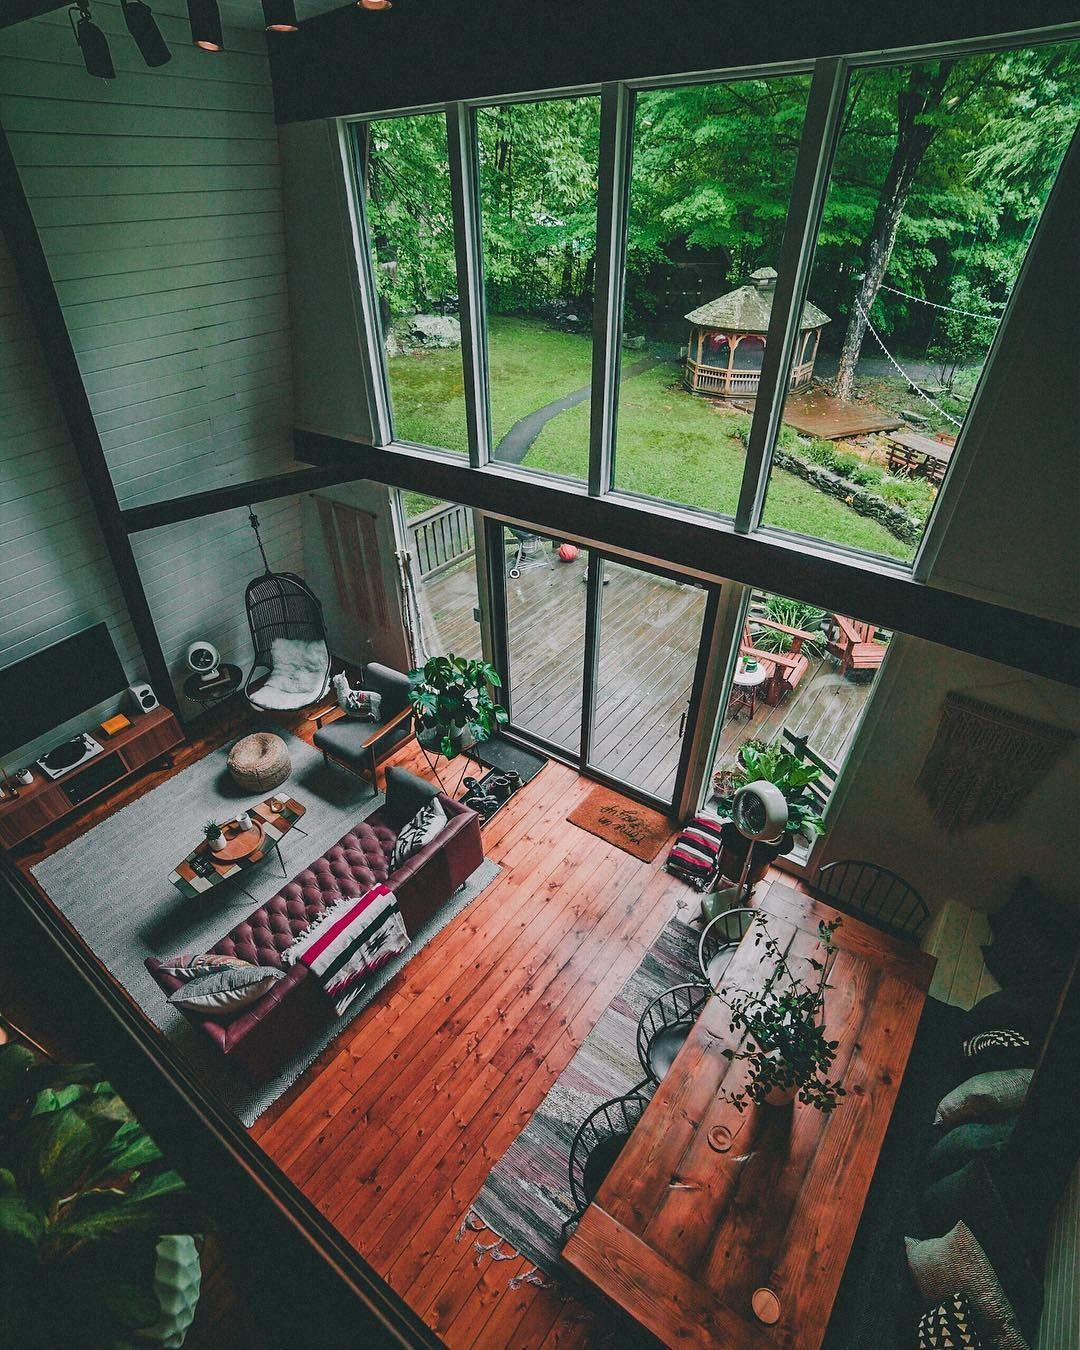 Loft style living room with floor to ceiling windows in tannersville new york  roomporn  dont care much for the decor but that set up also home interior design  inspiration lovely house rh pinterest